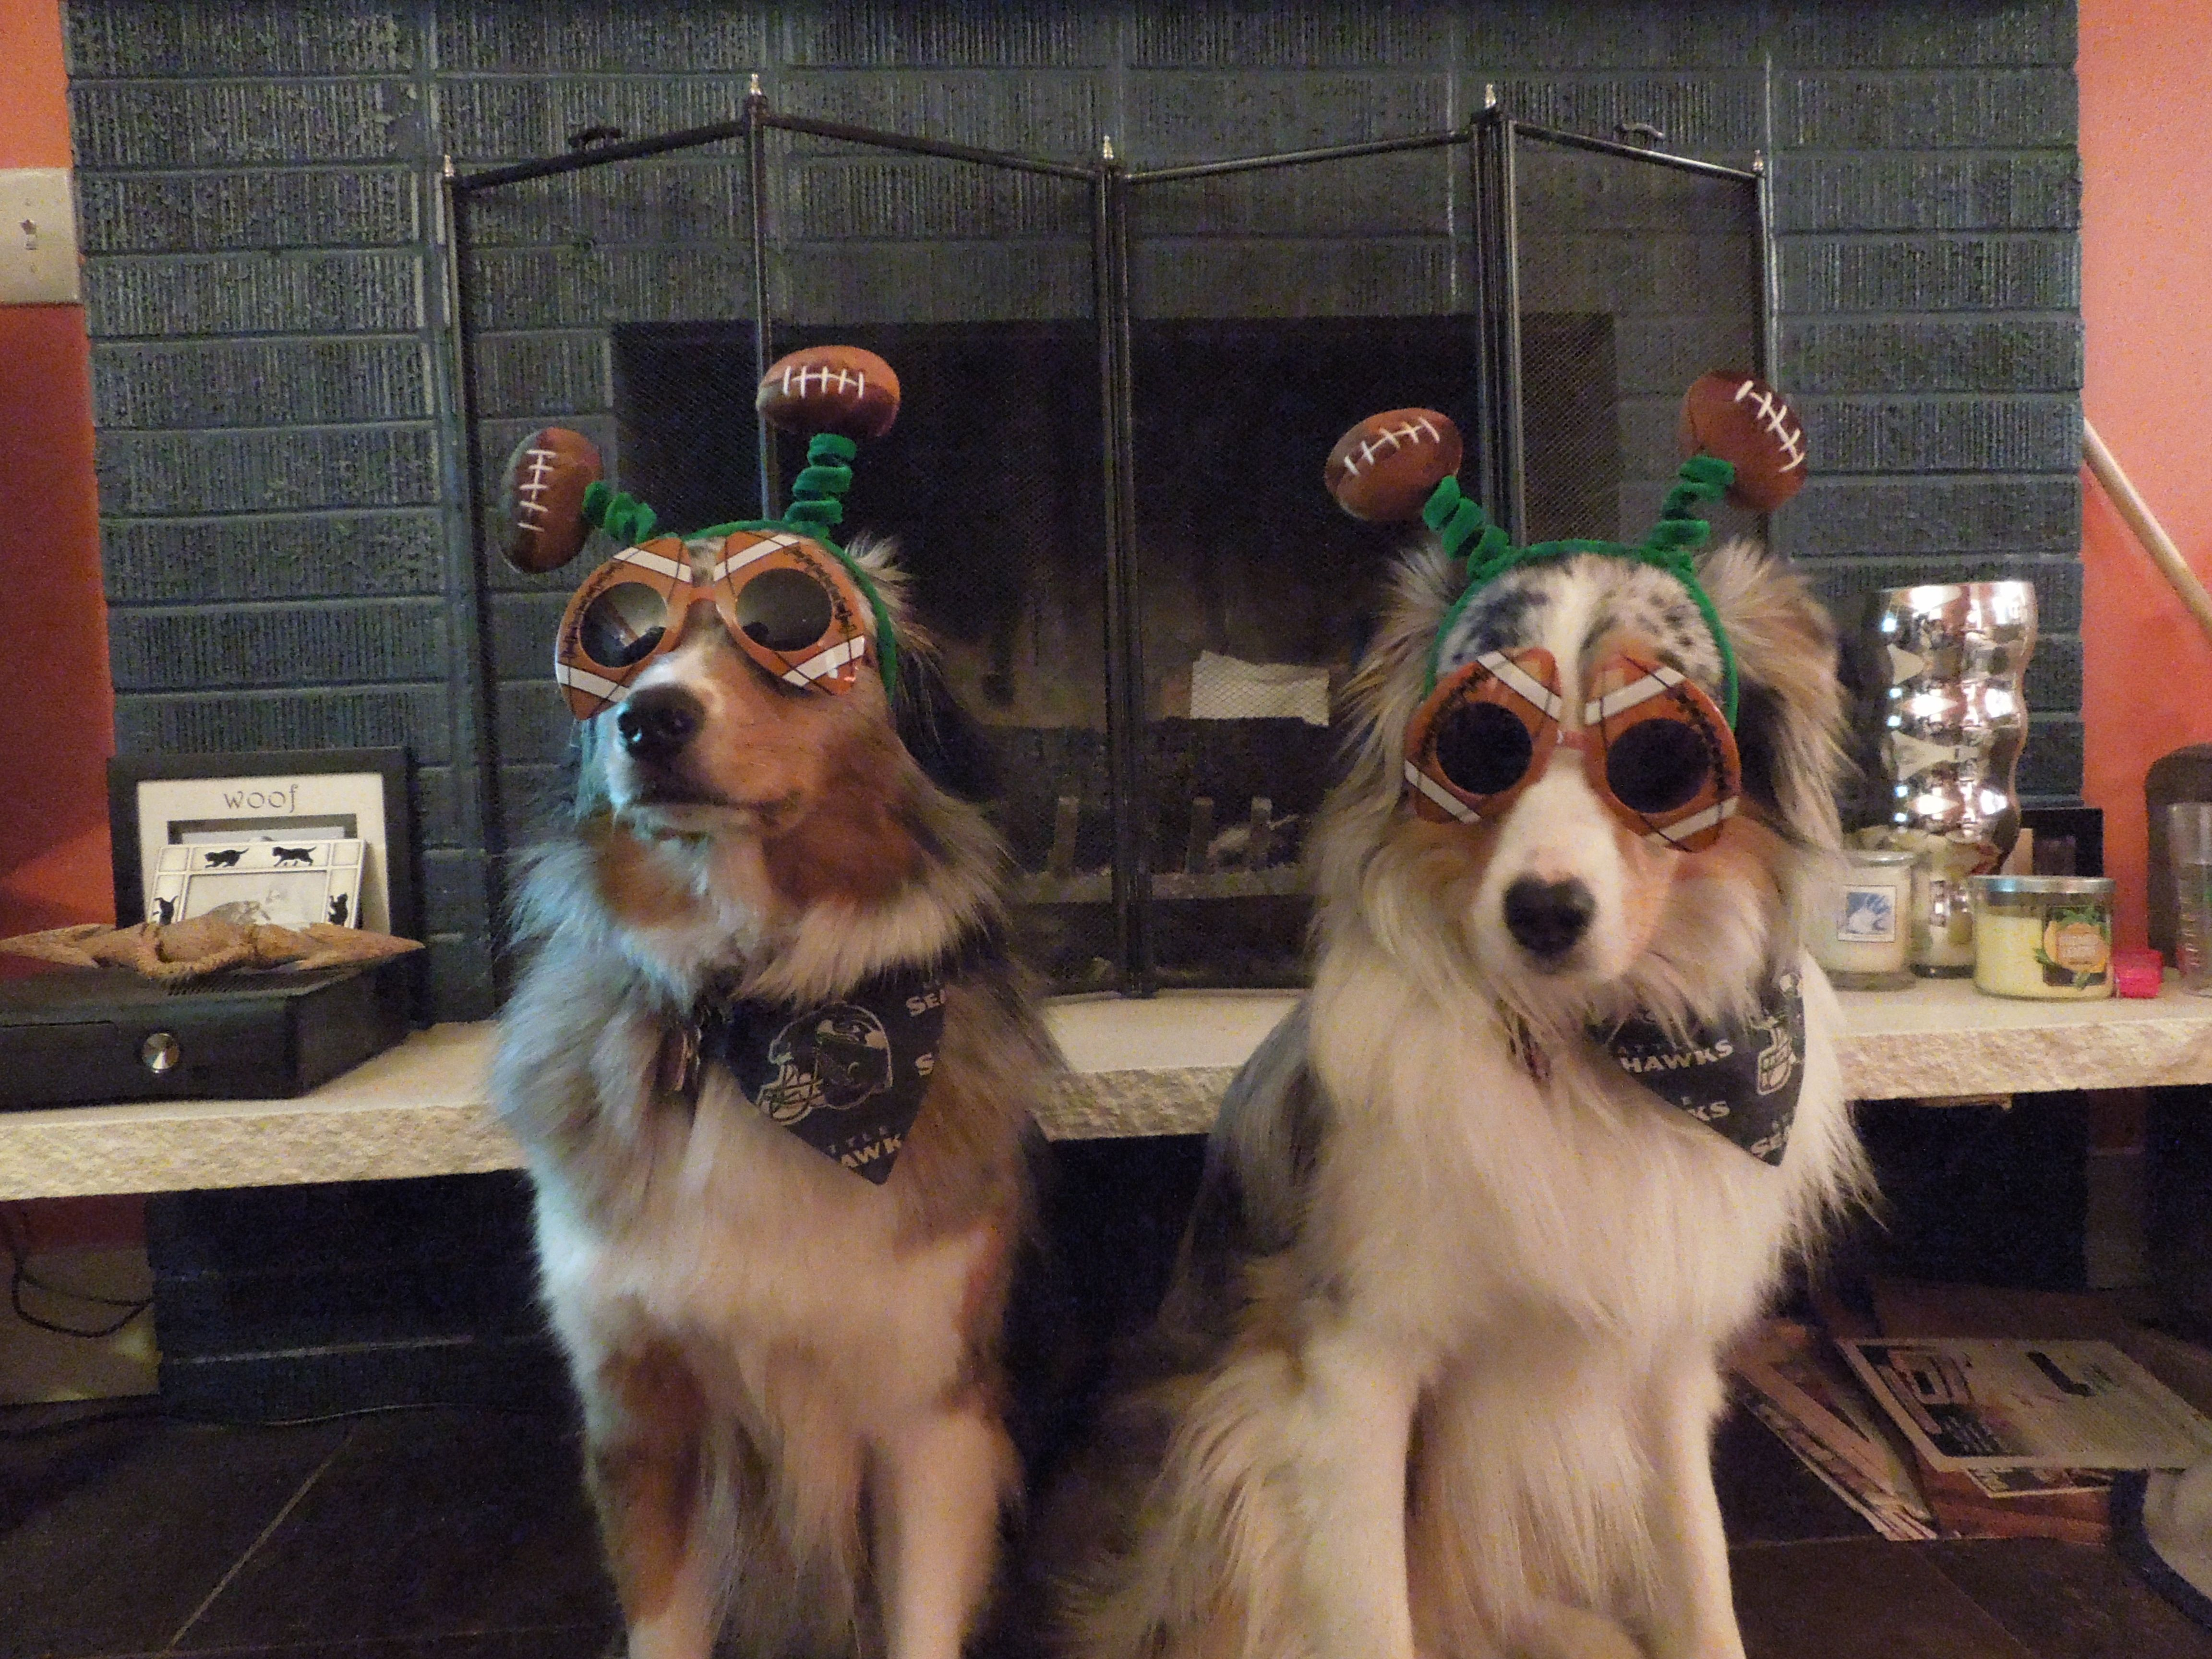 Tully Mars & Jimmy cheering on the Seahawks during the Super Bowl! #Seahawks #12thDogs #Dogs